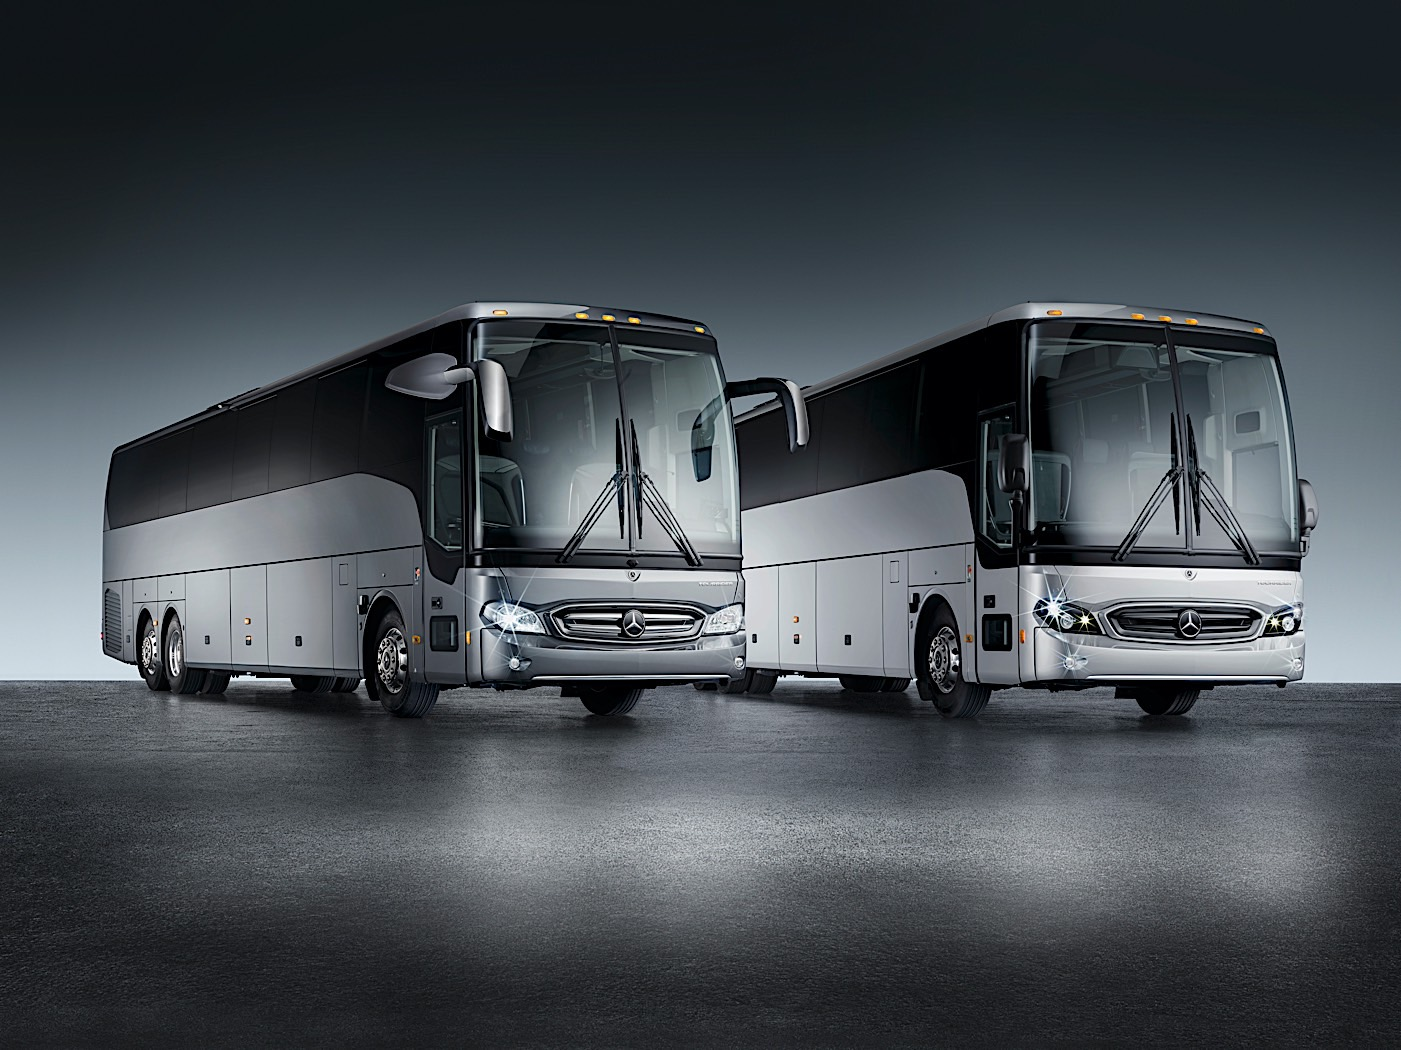 mercedes-benz-tourrider-is-an-exclusively-american-motorcoach,-a-nod-to-muscle-cars